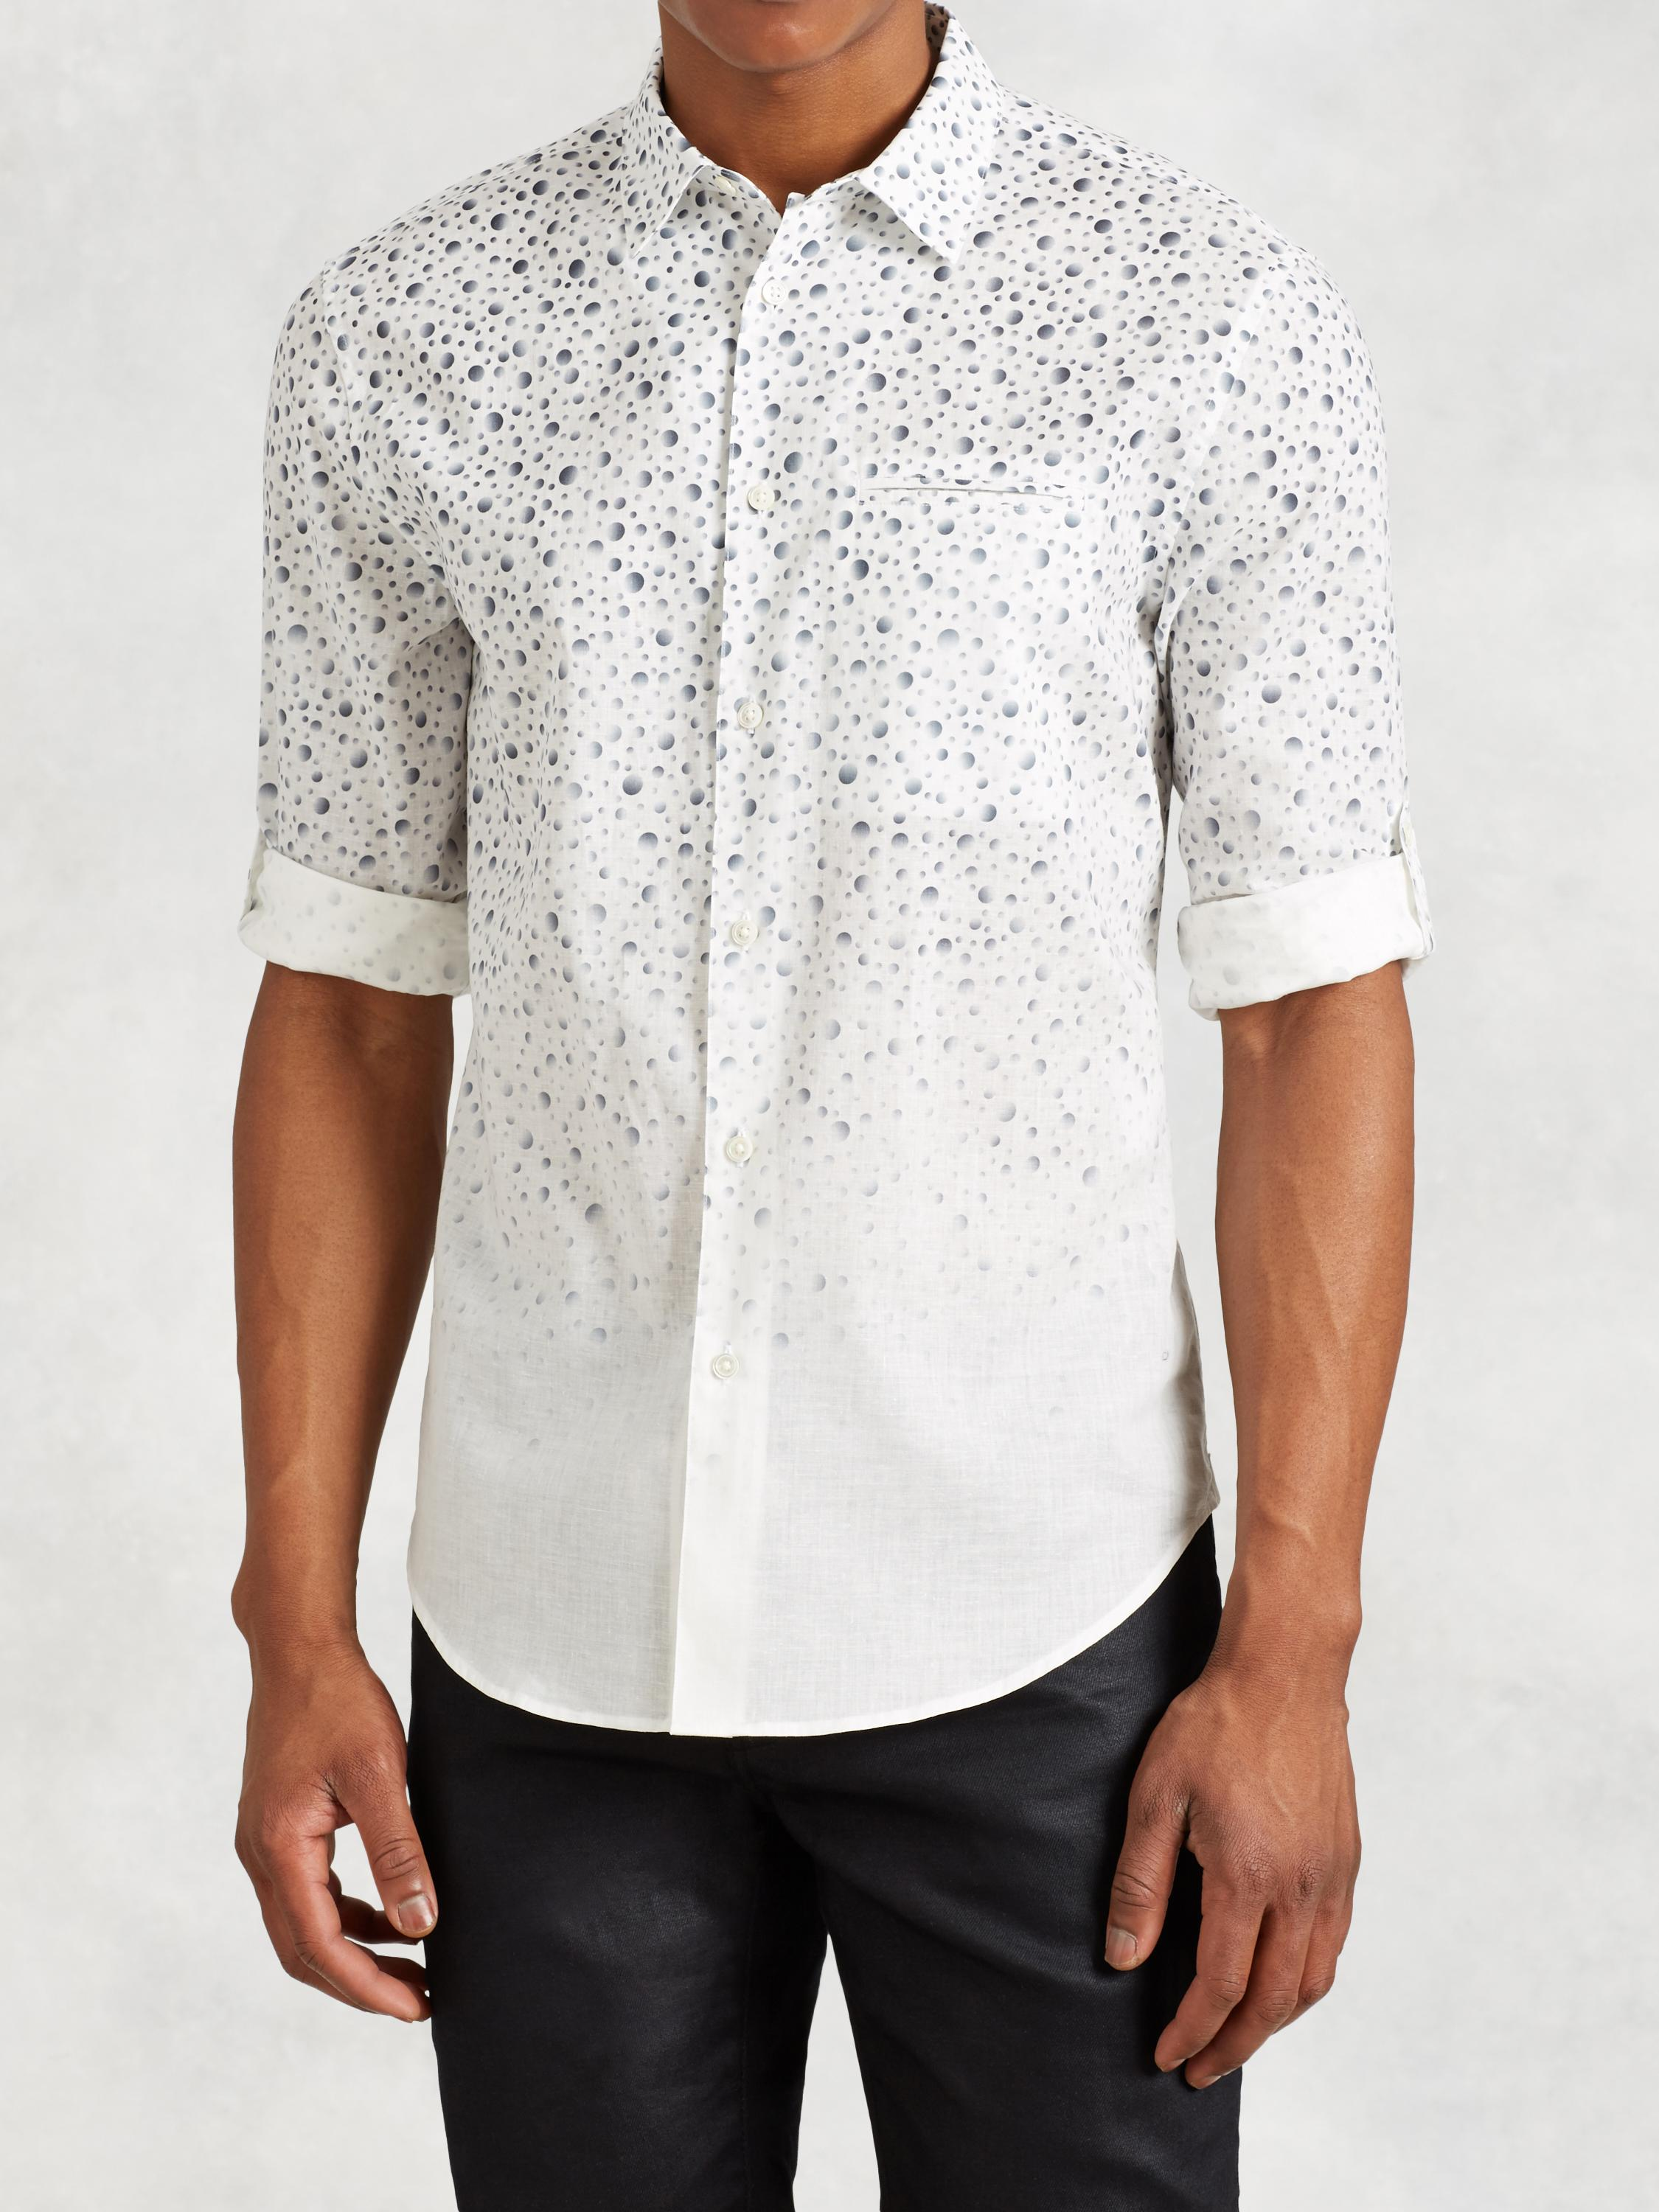 Gradient Dot Shirt